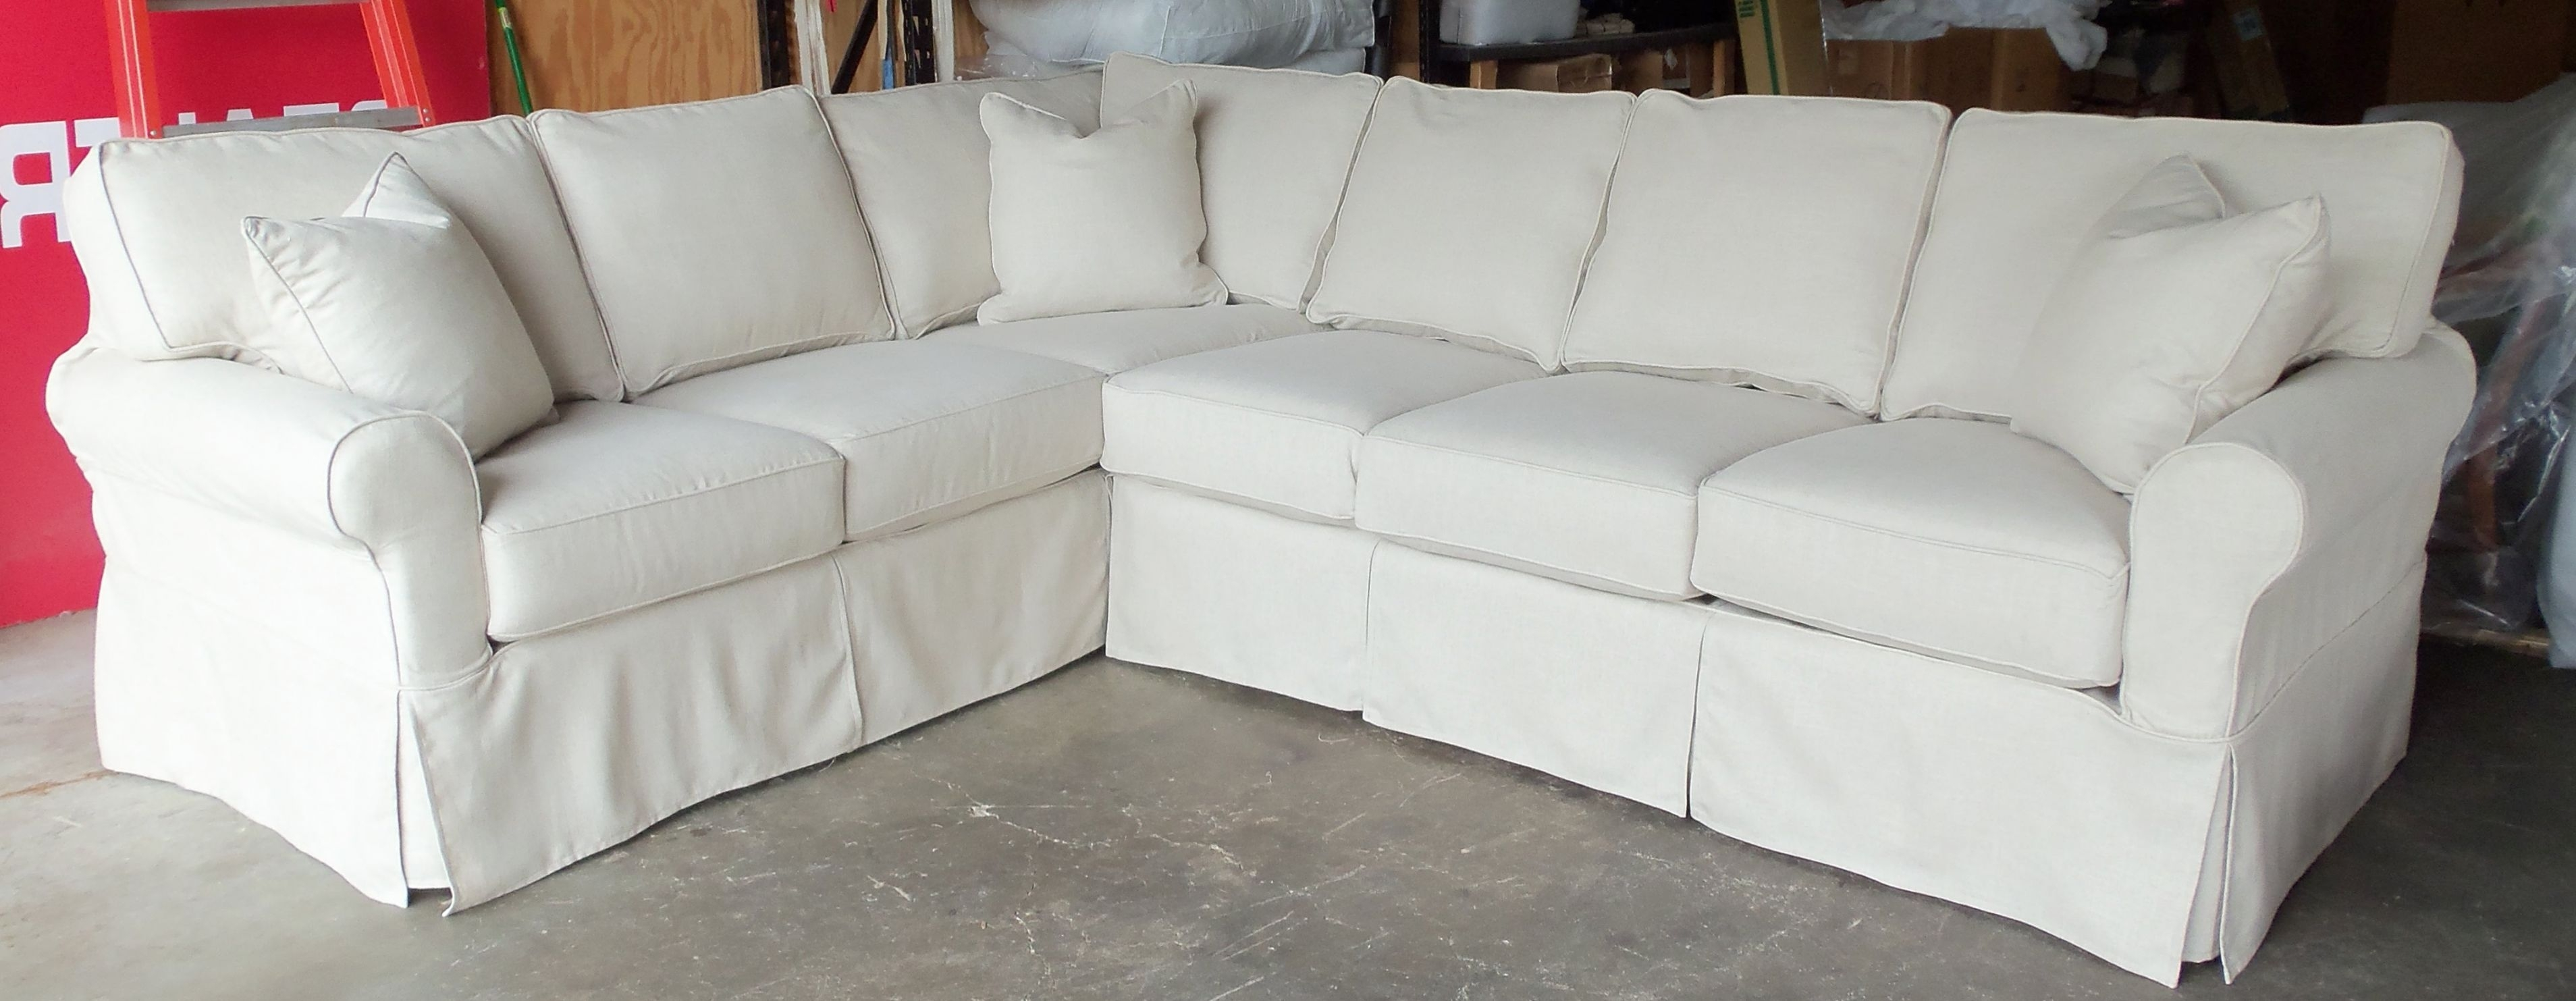 Modern Concept Sectional Sofa Covers And Rowe Furniture Slipcover Intended For Sectional Sofas At Birmingham Al (View 8 of 15)